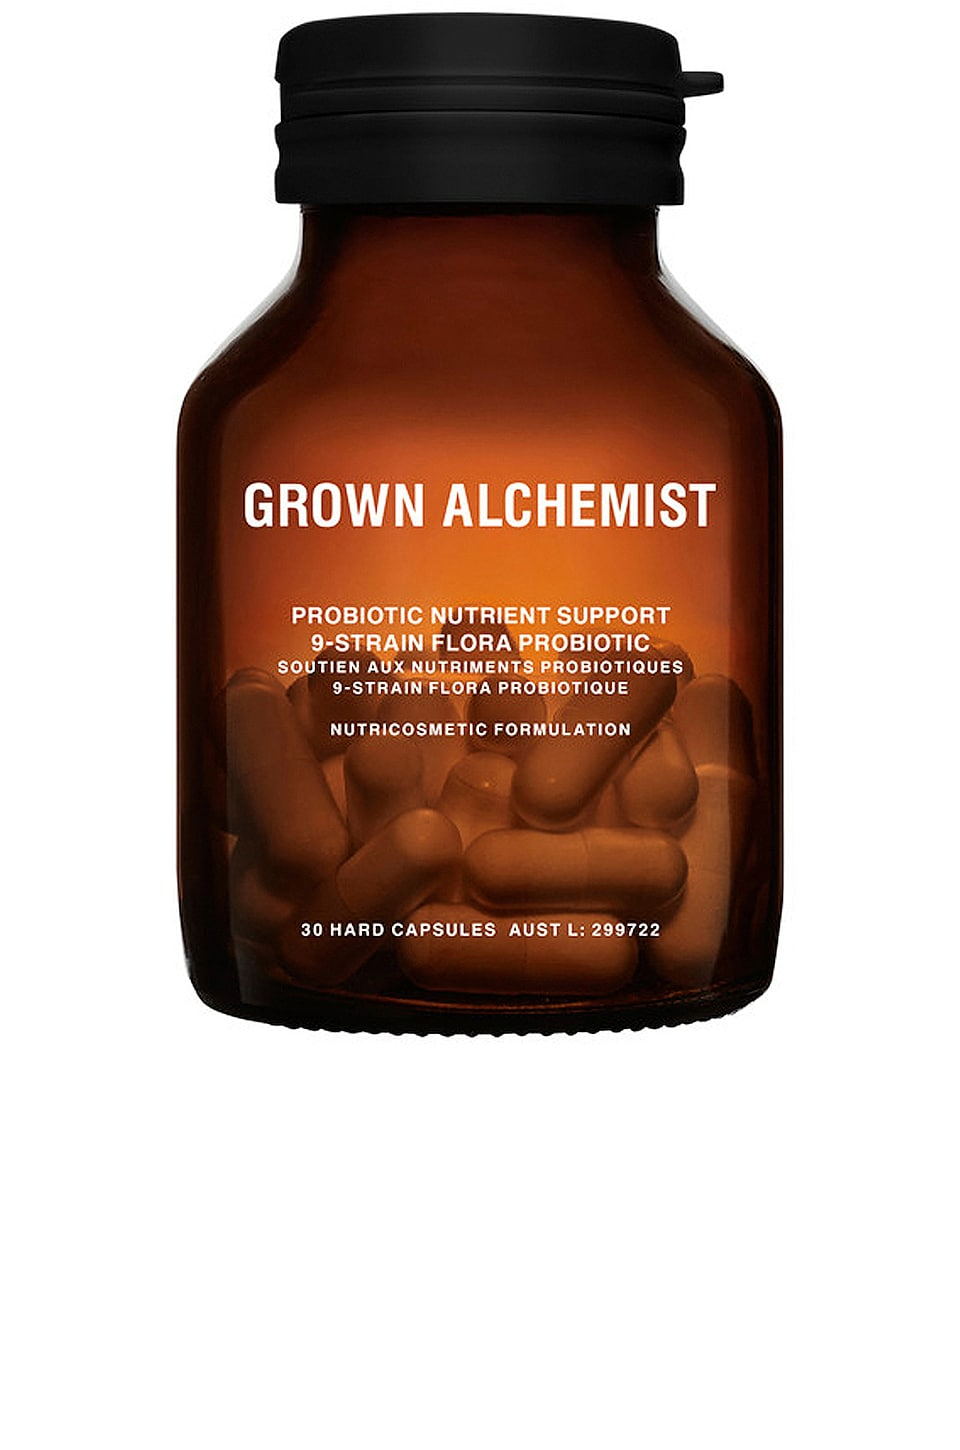 Grown Alchemist Probiotic Nutrient Support: 9-Strain Flora Probiotic